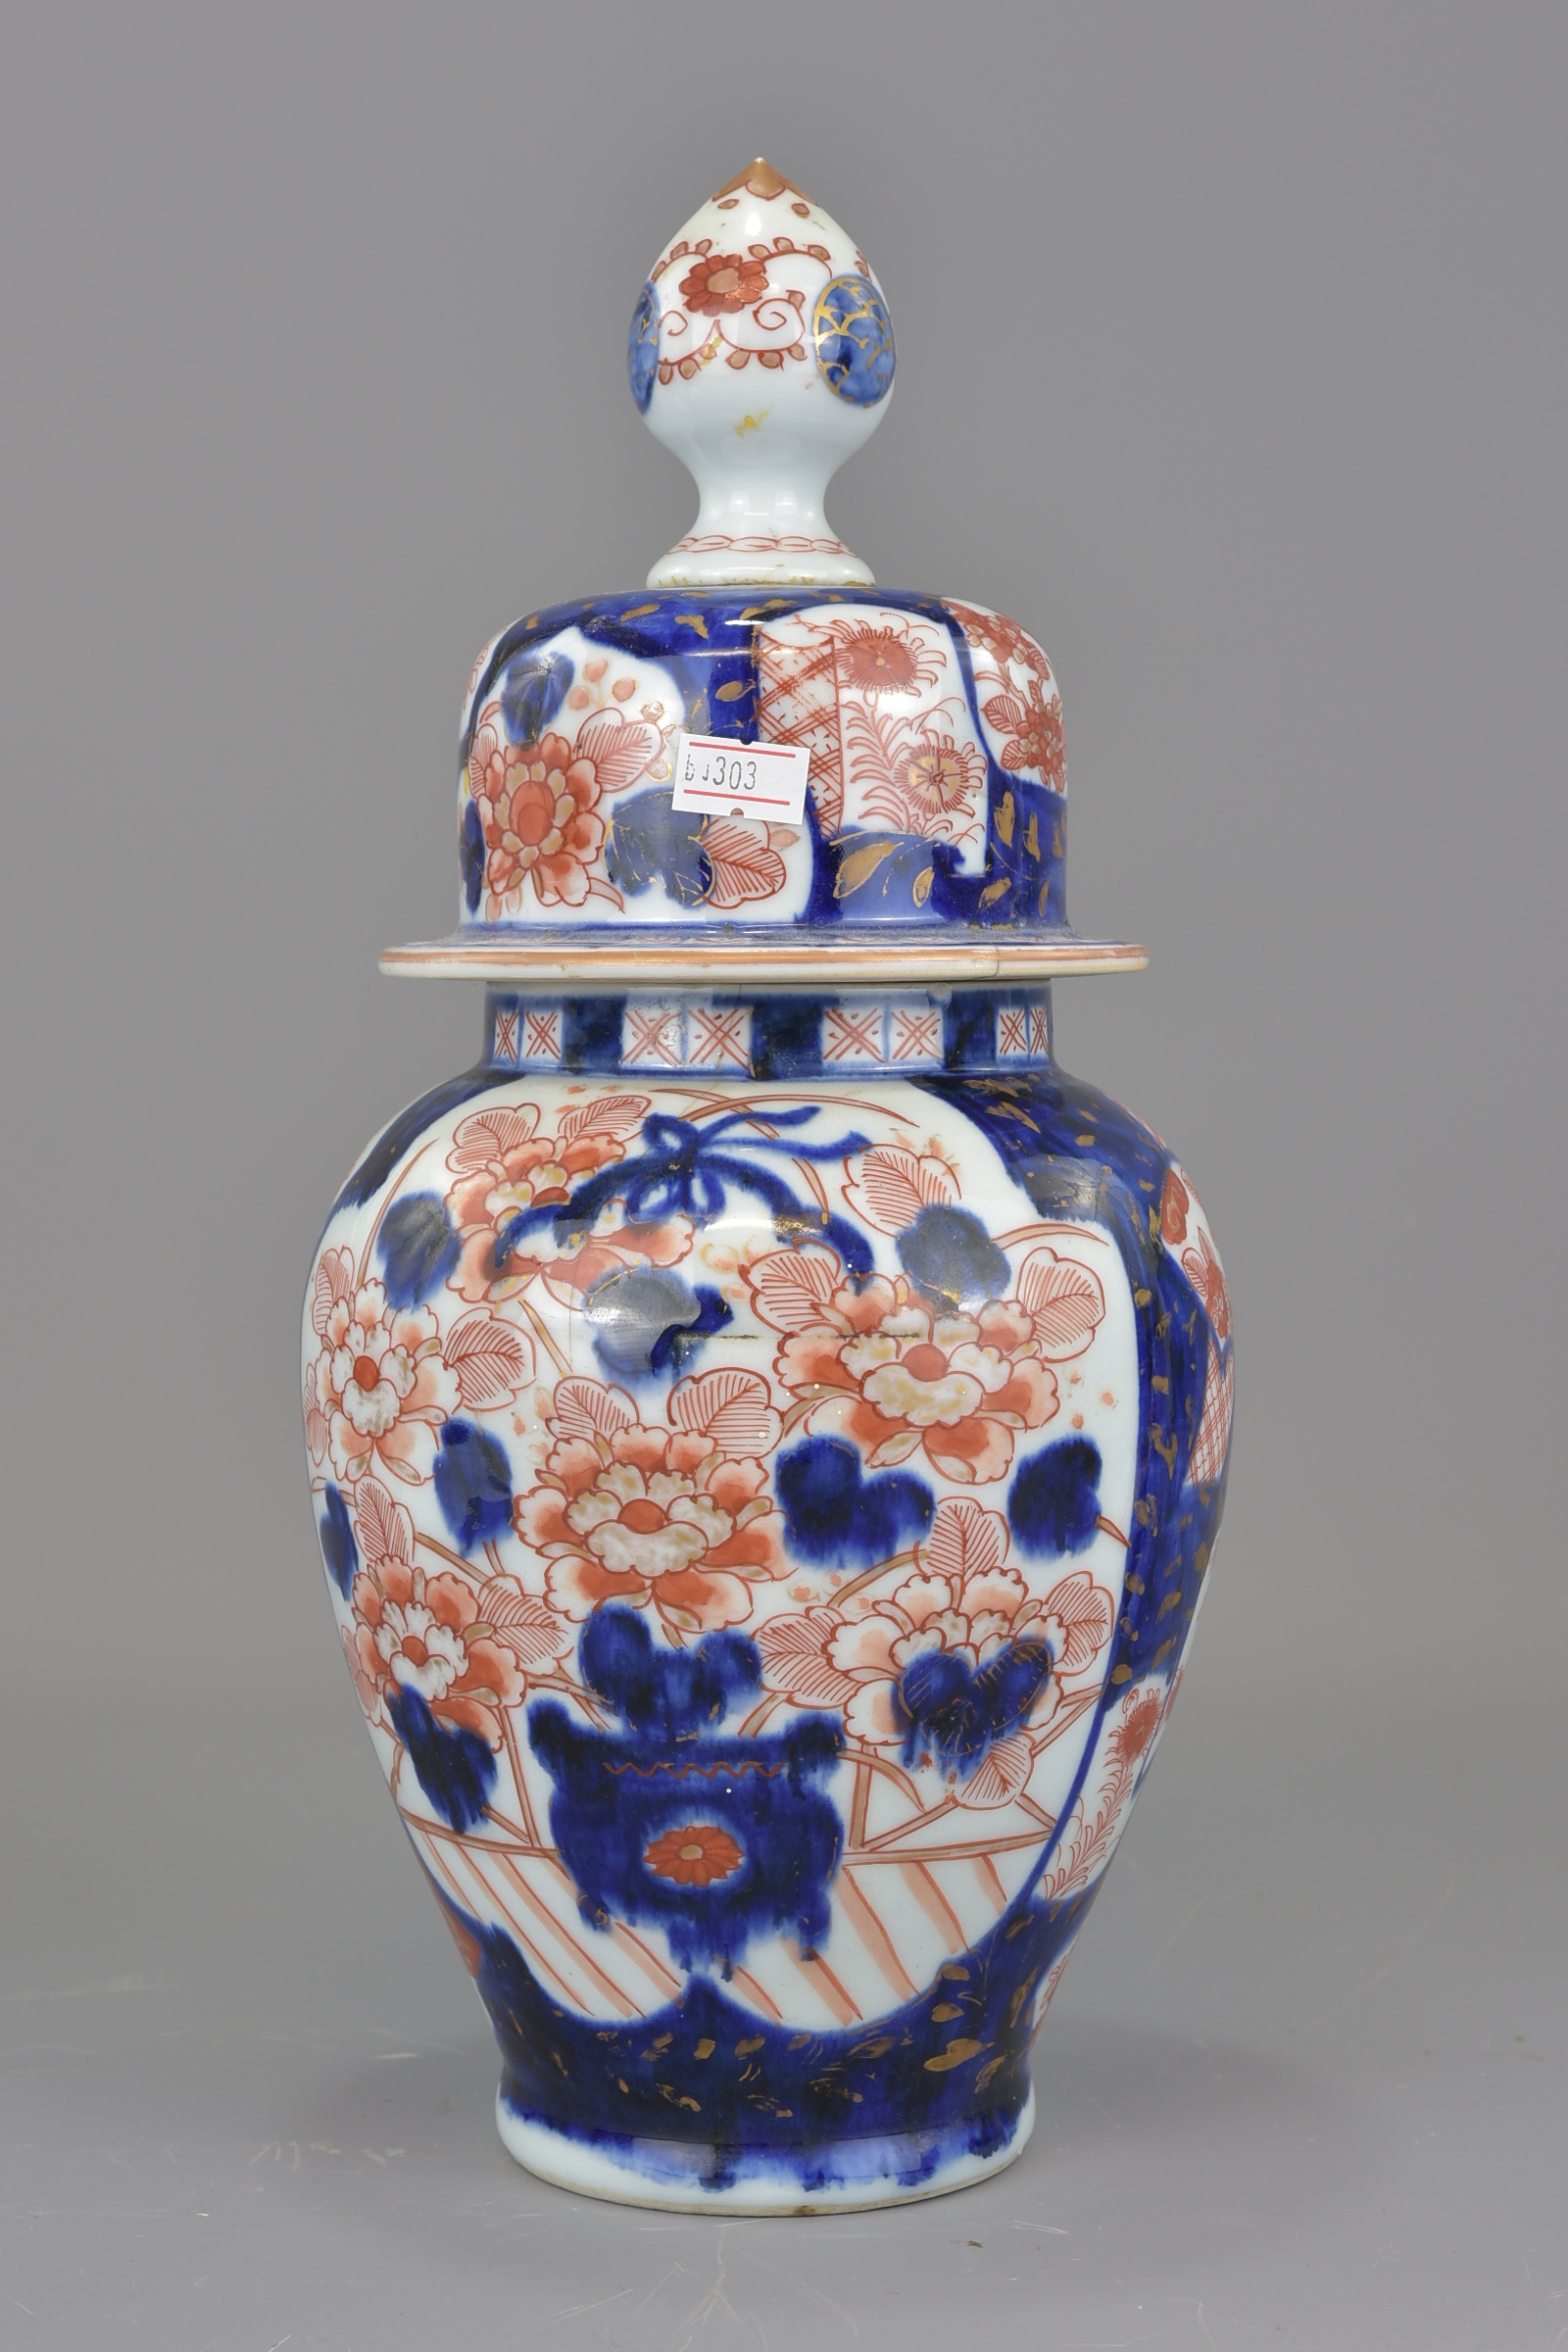 Lot 18 - A Japanese 19th century Imari porcelain jar and cover together with four other Japanese items. Jar 3